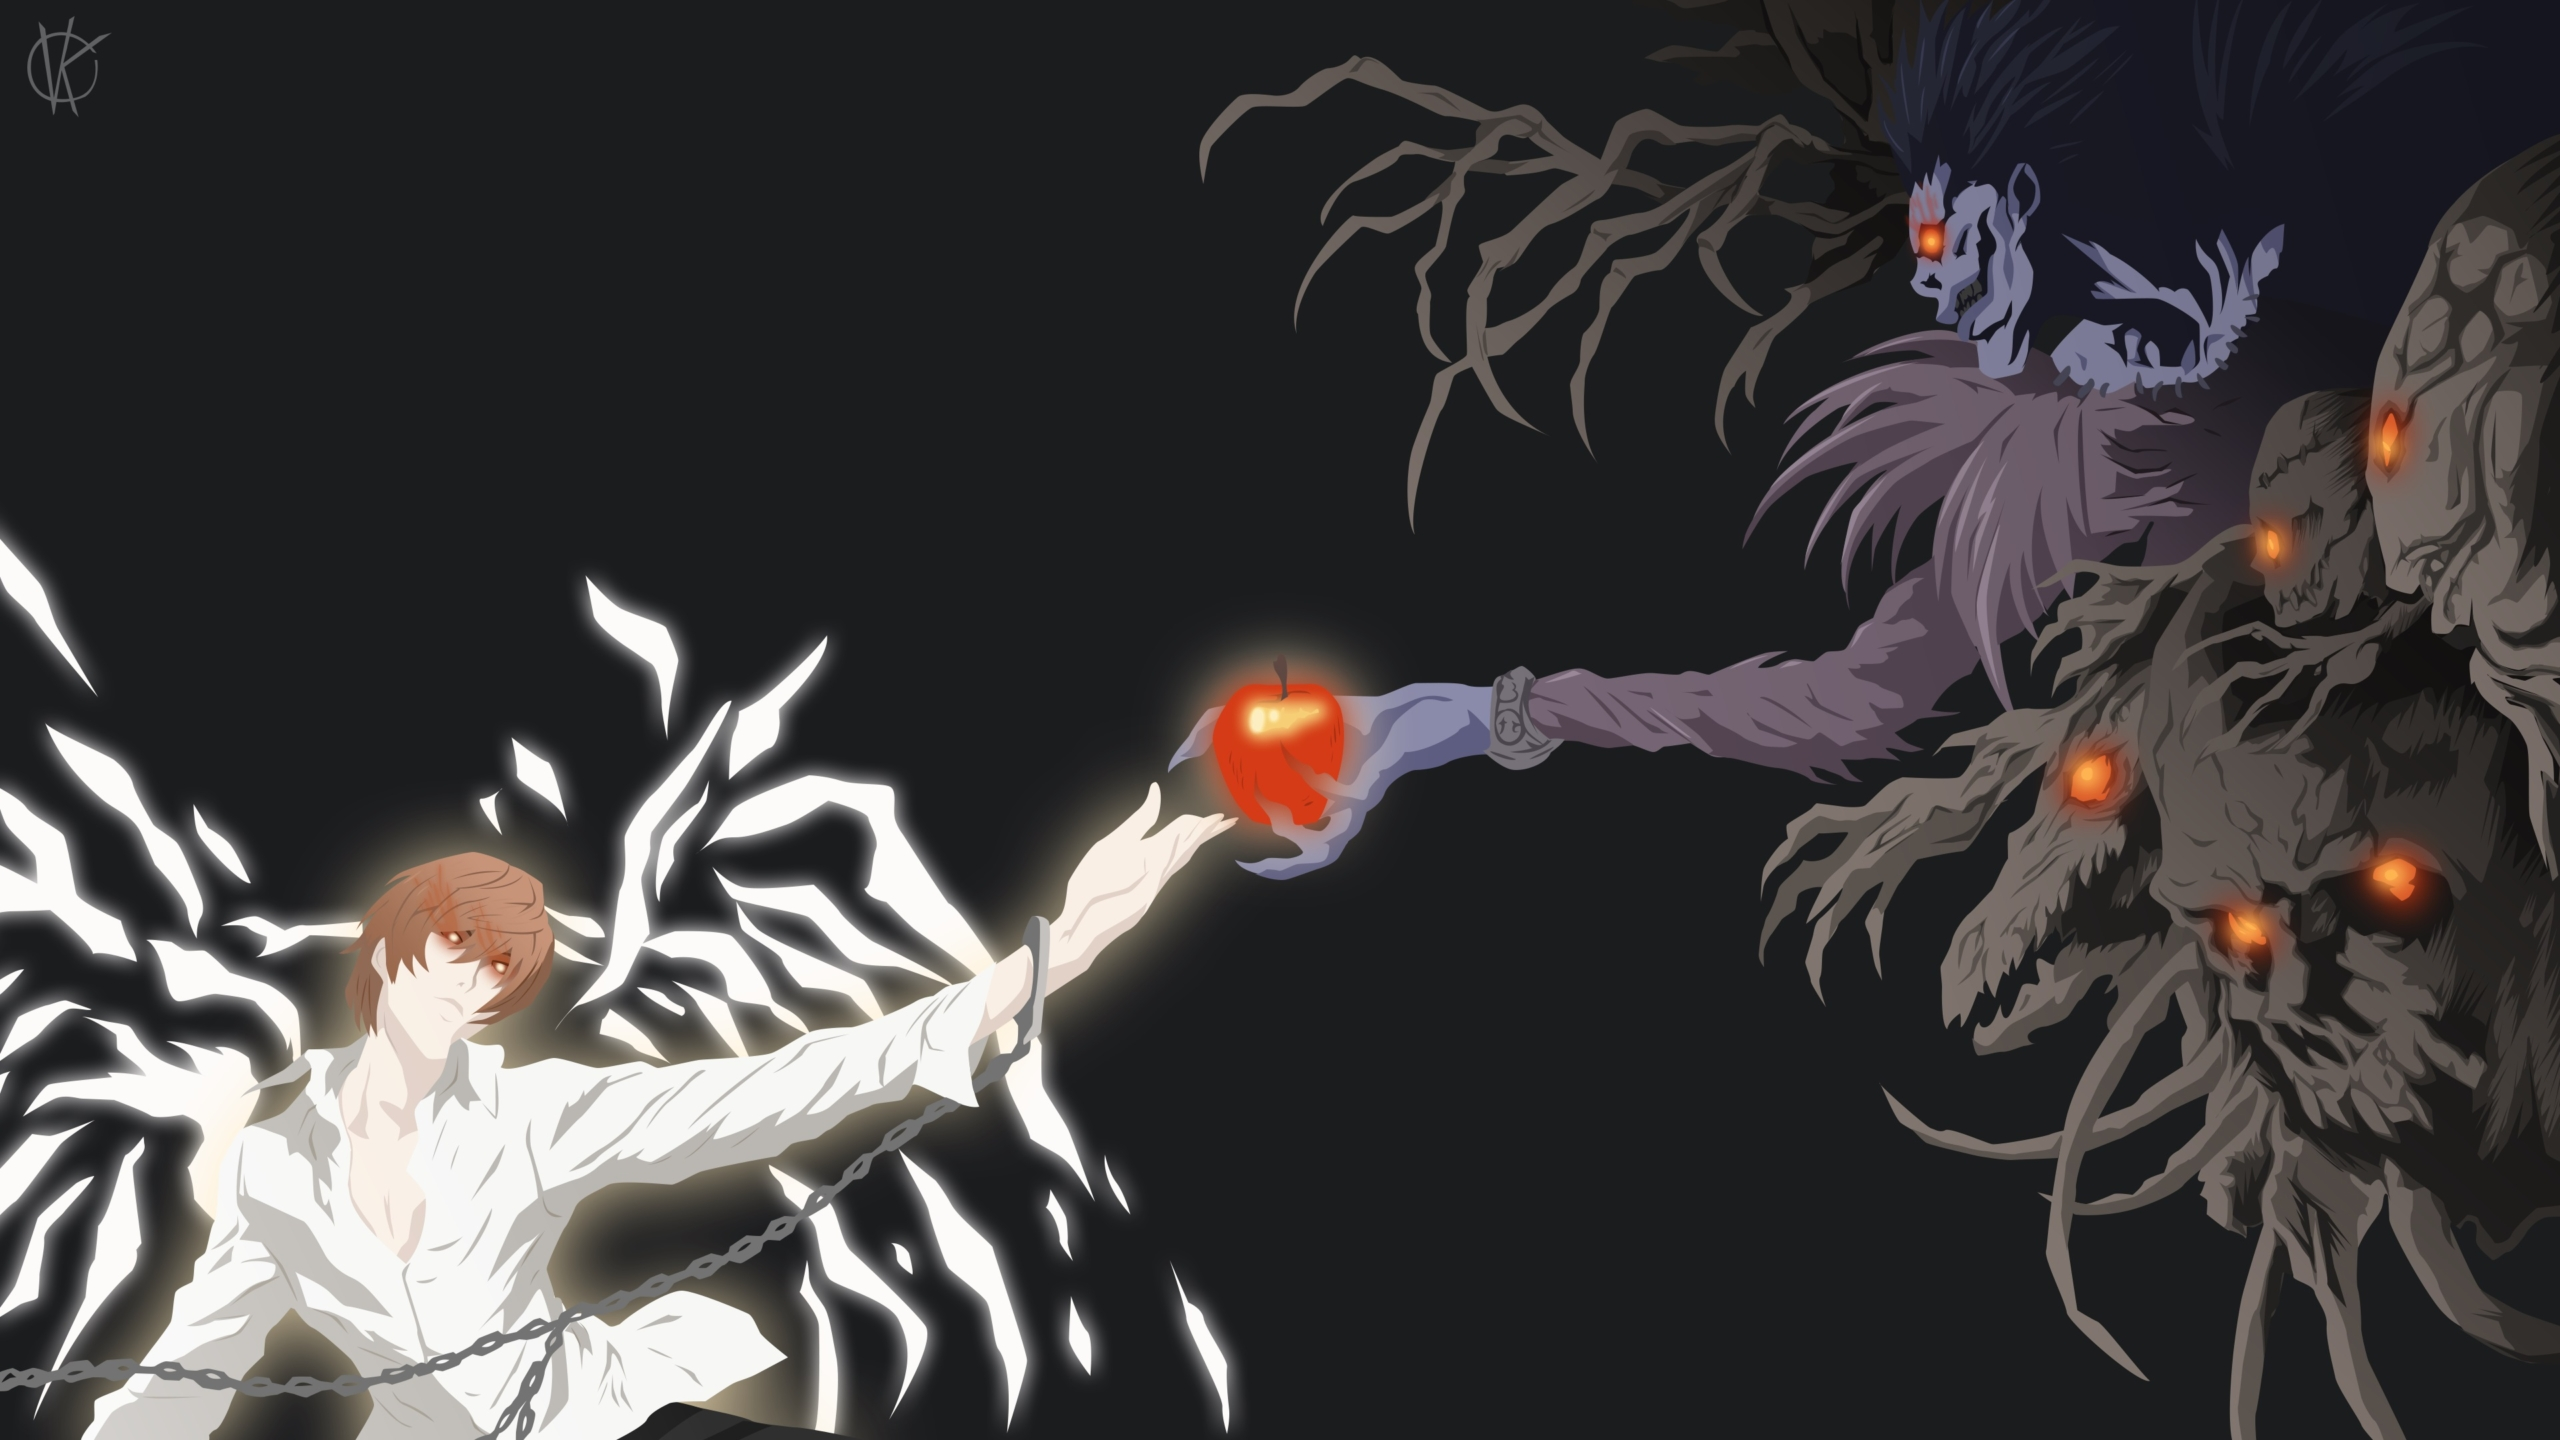 Show Off Your Creativity With Death Note Wallpaper